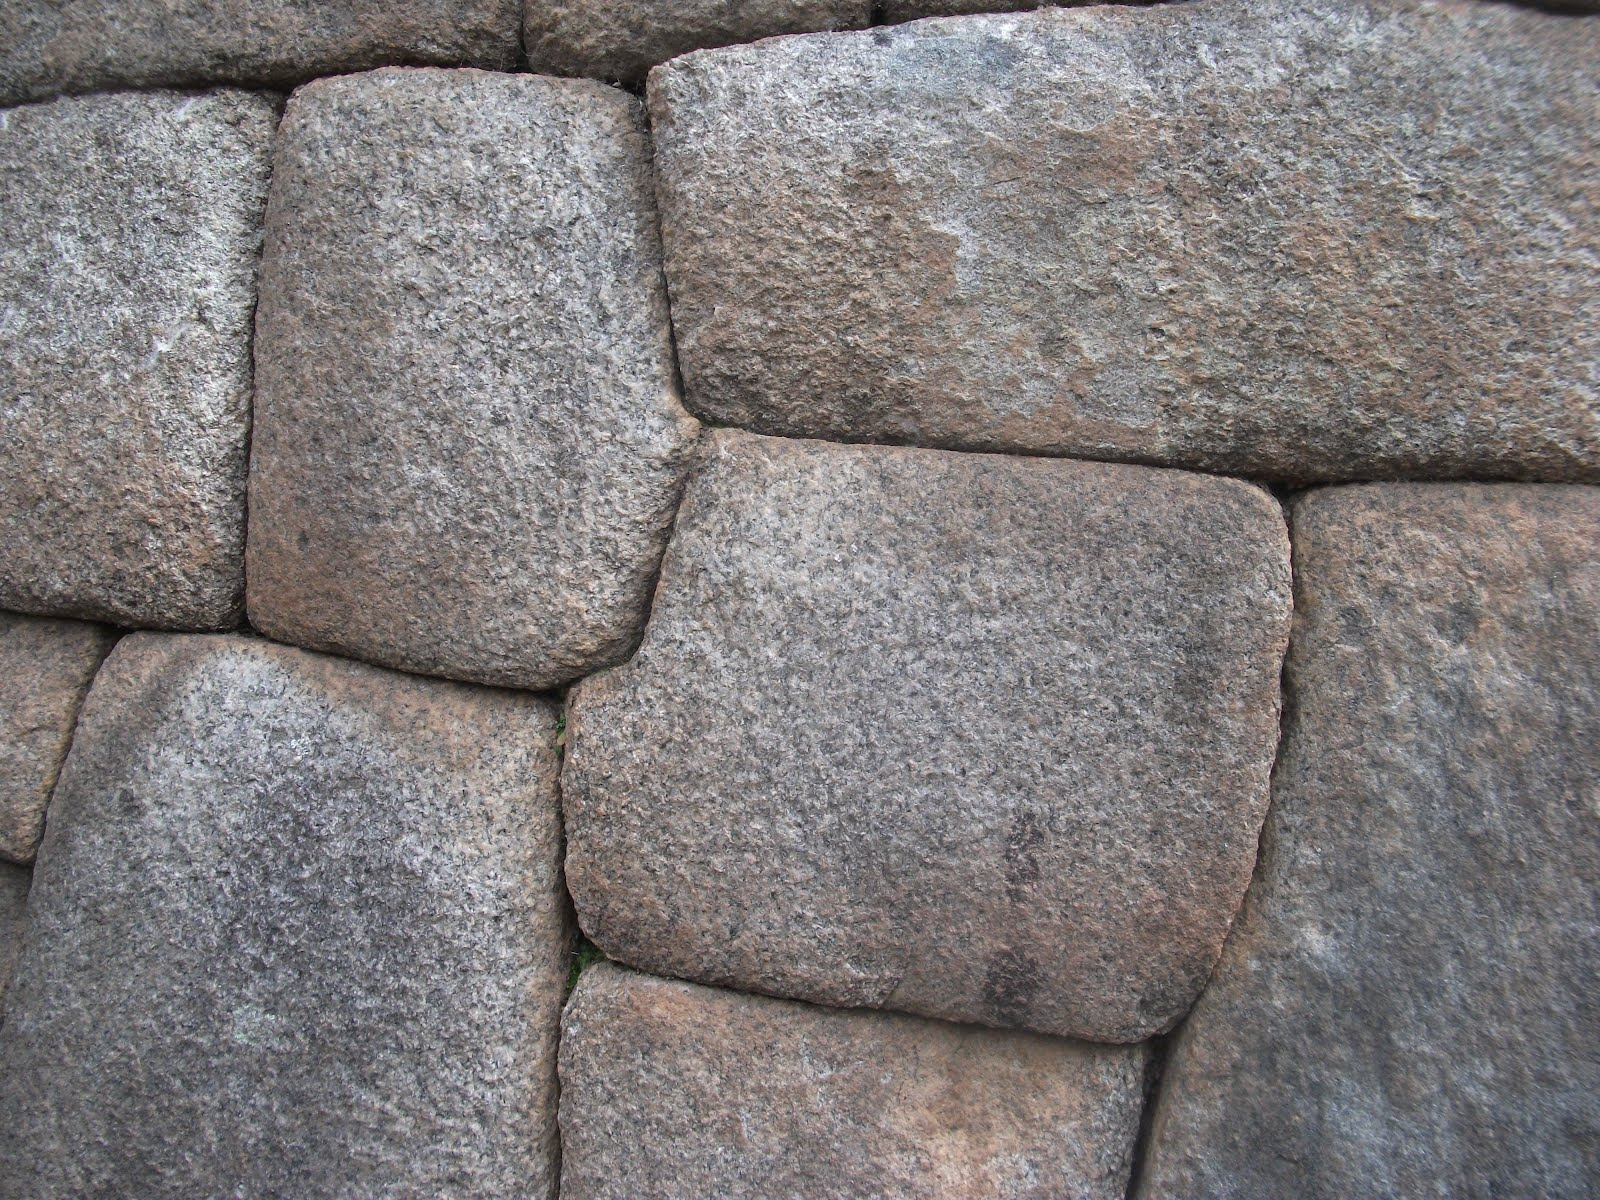 Granite Stone Machu Picchu : Machu picchu lost city of the incas search life